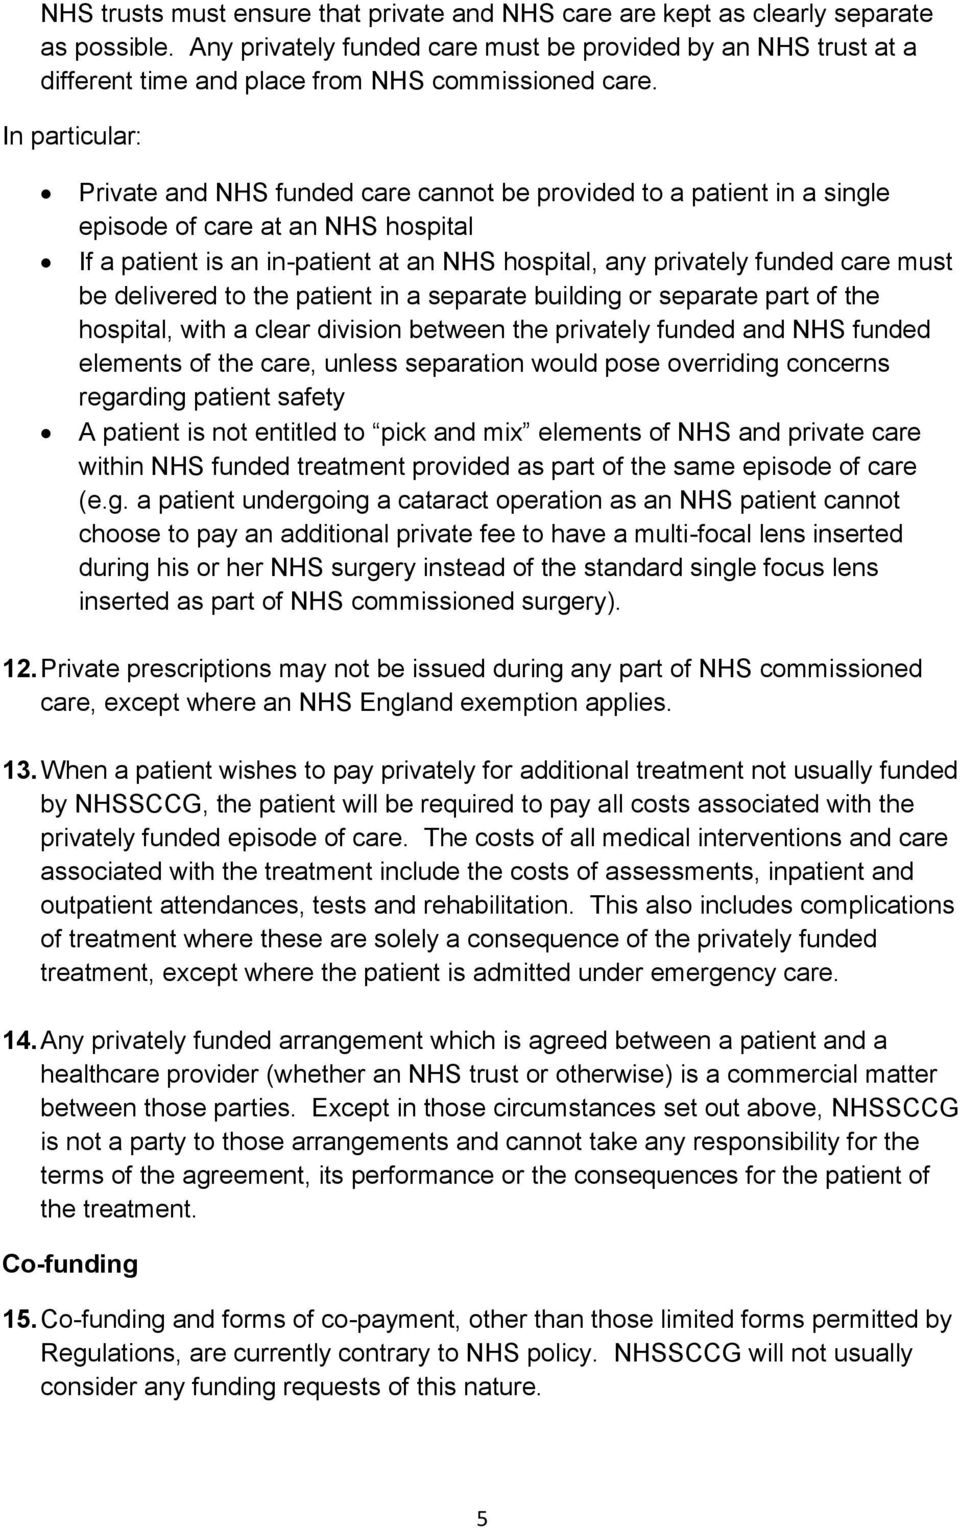 In particular: Private and NHS funded care cannot be provided to a patient in a single episode of care at an NHS hospital If a patient is an in-patient at an NHS hospital, any privately funded care